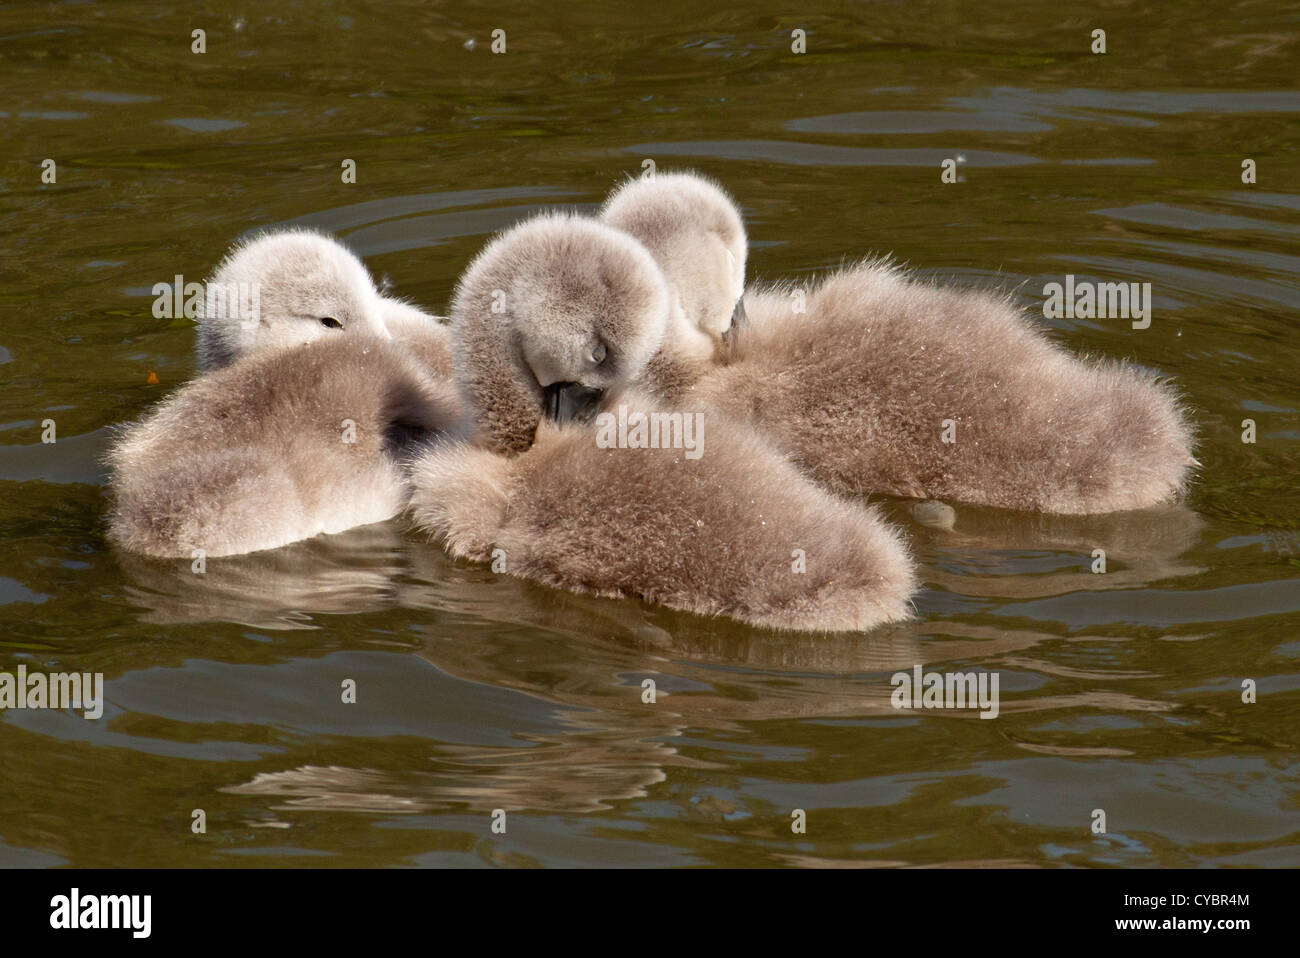 Three Cygnet - Signet or baby Swans relaxing and getting some sleep Stock Photo